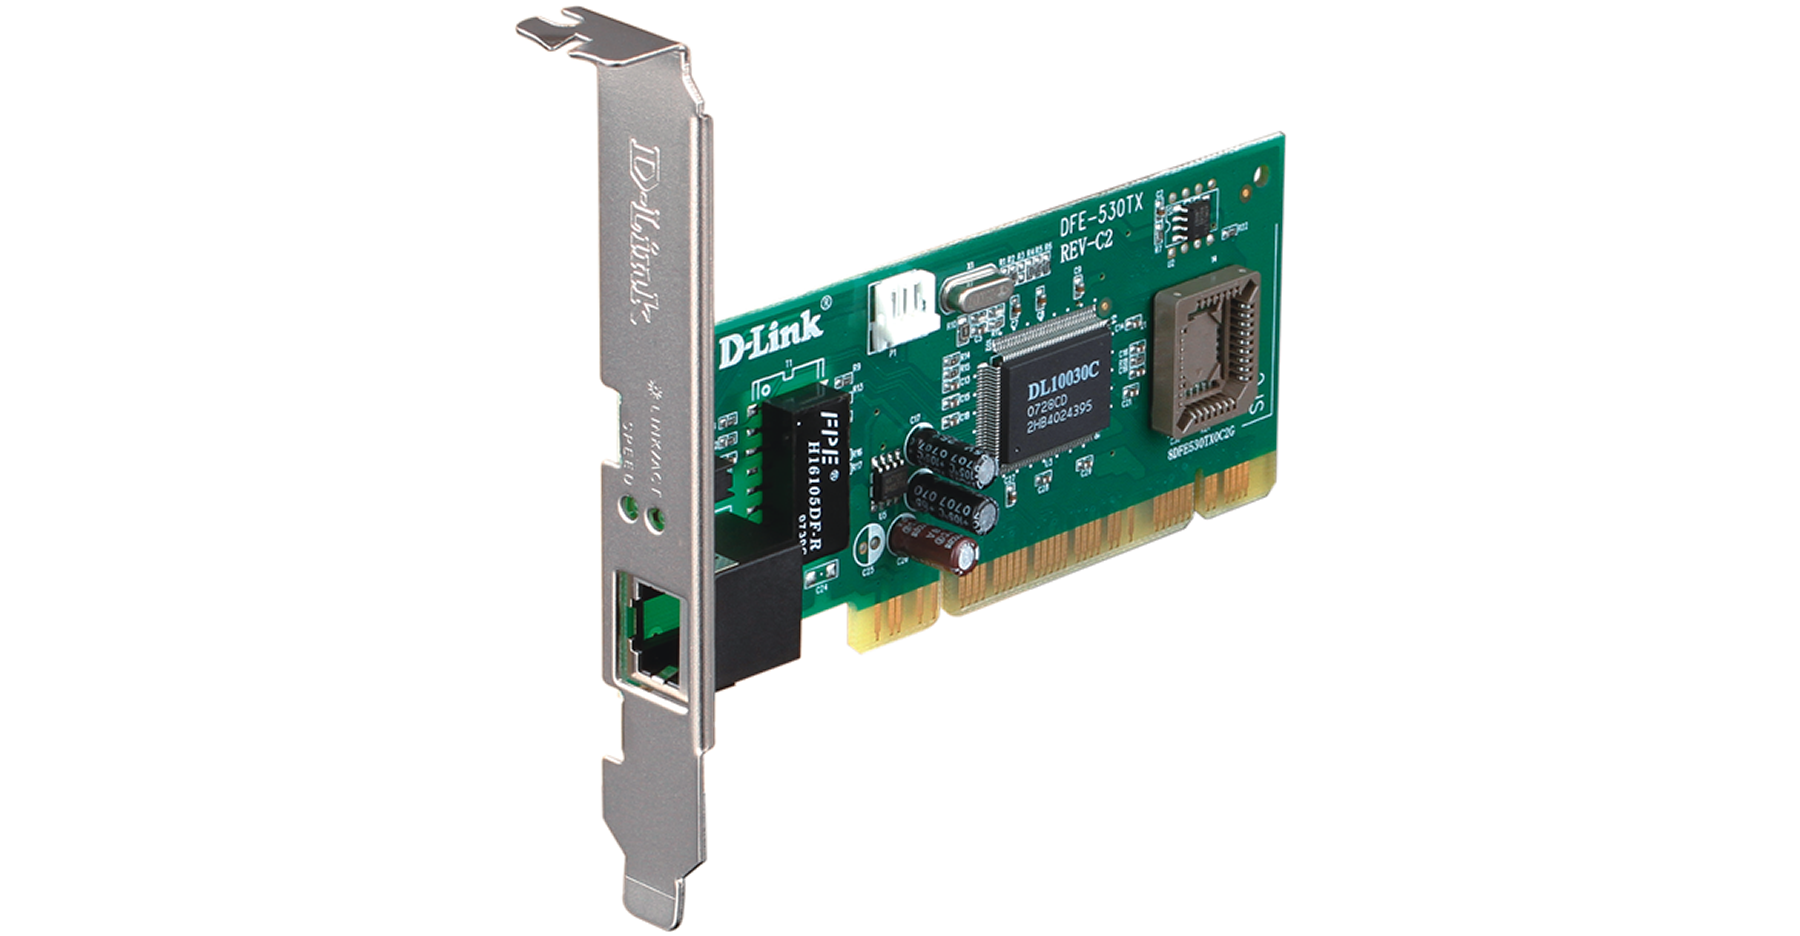 DLINK DFE530TX PCI DRIVERS DOWNLOAD